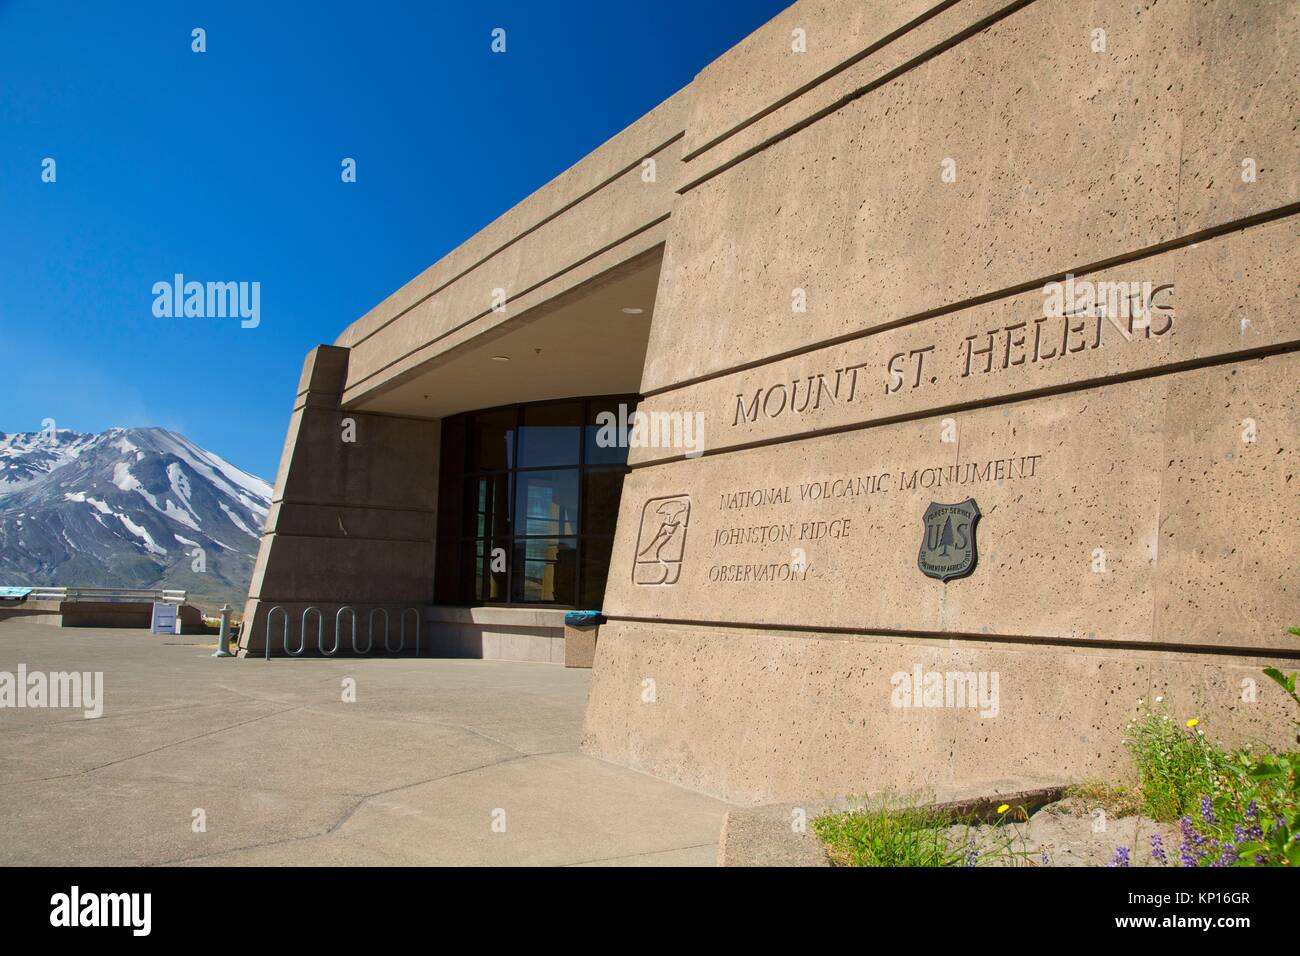 Johnston Ridge Observatory, Mt St Helens National Volcanic Monument, Washington. - Stock Image